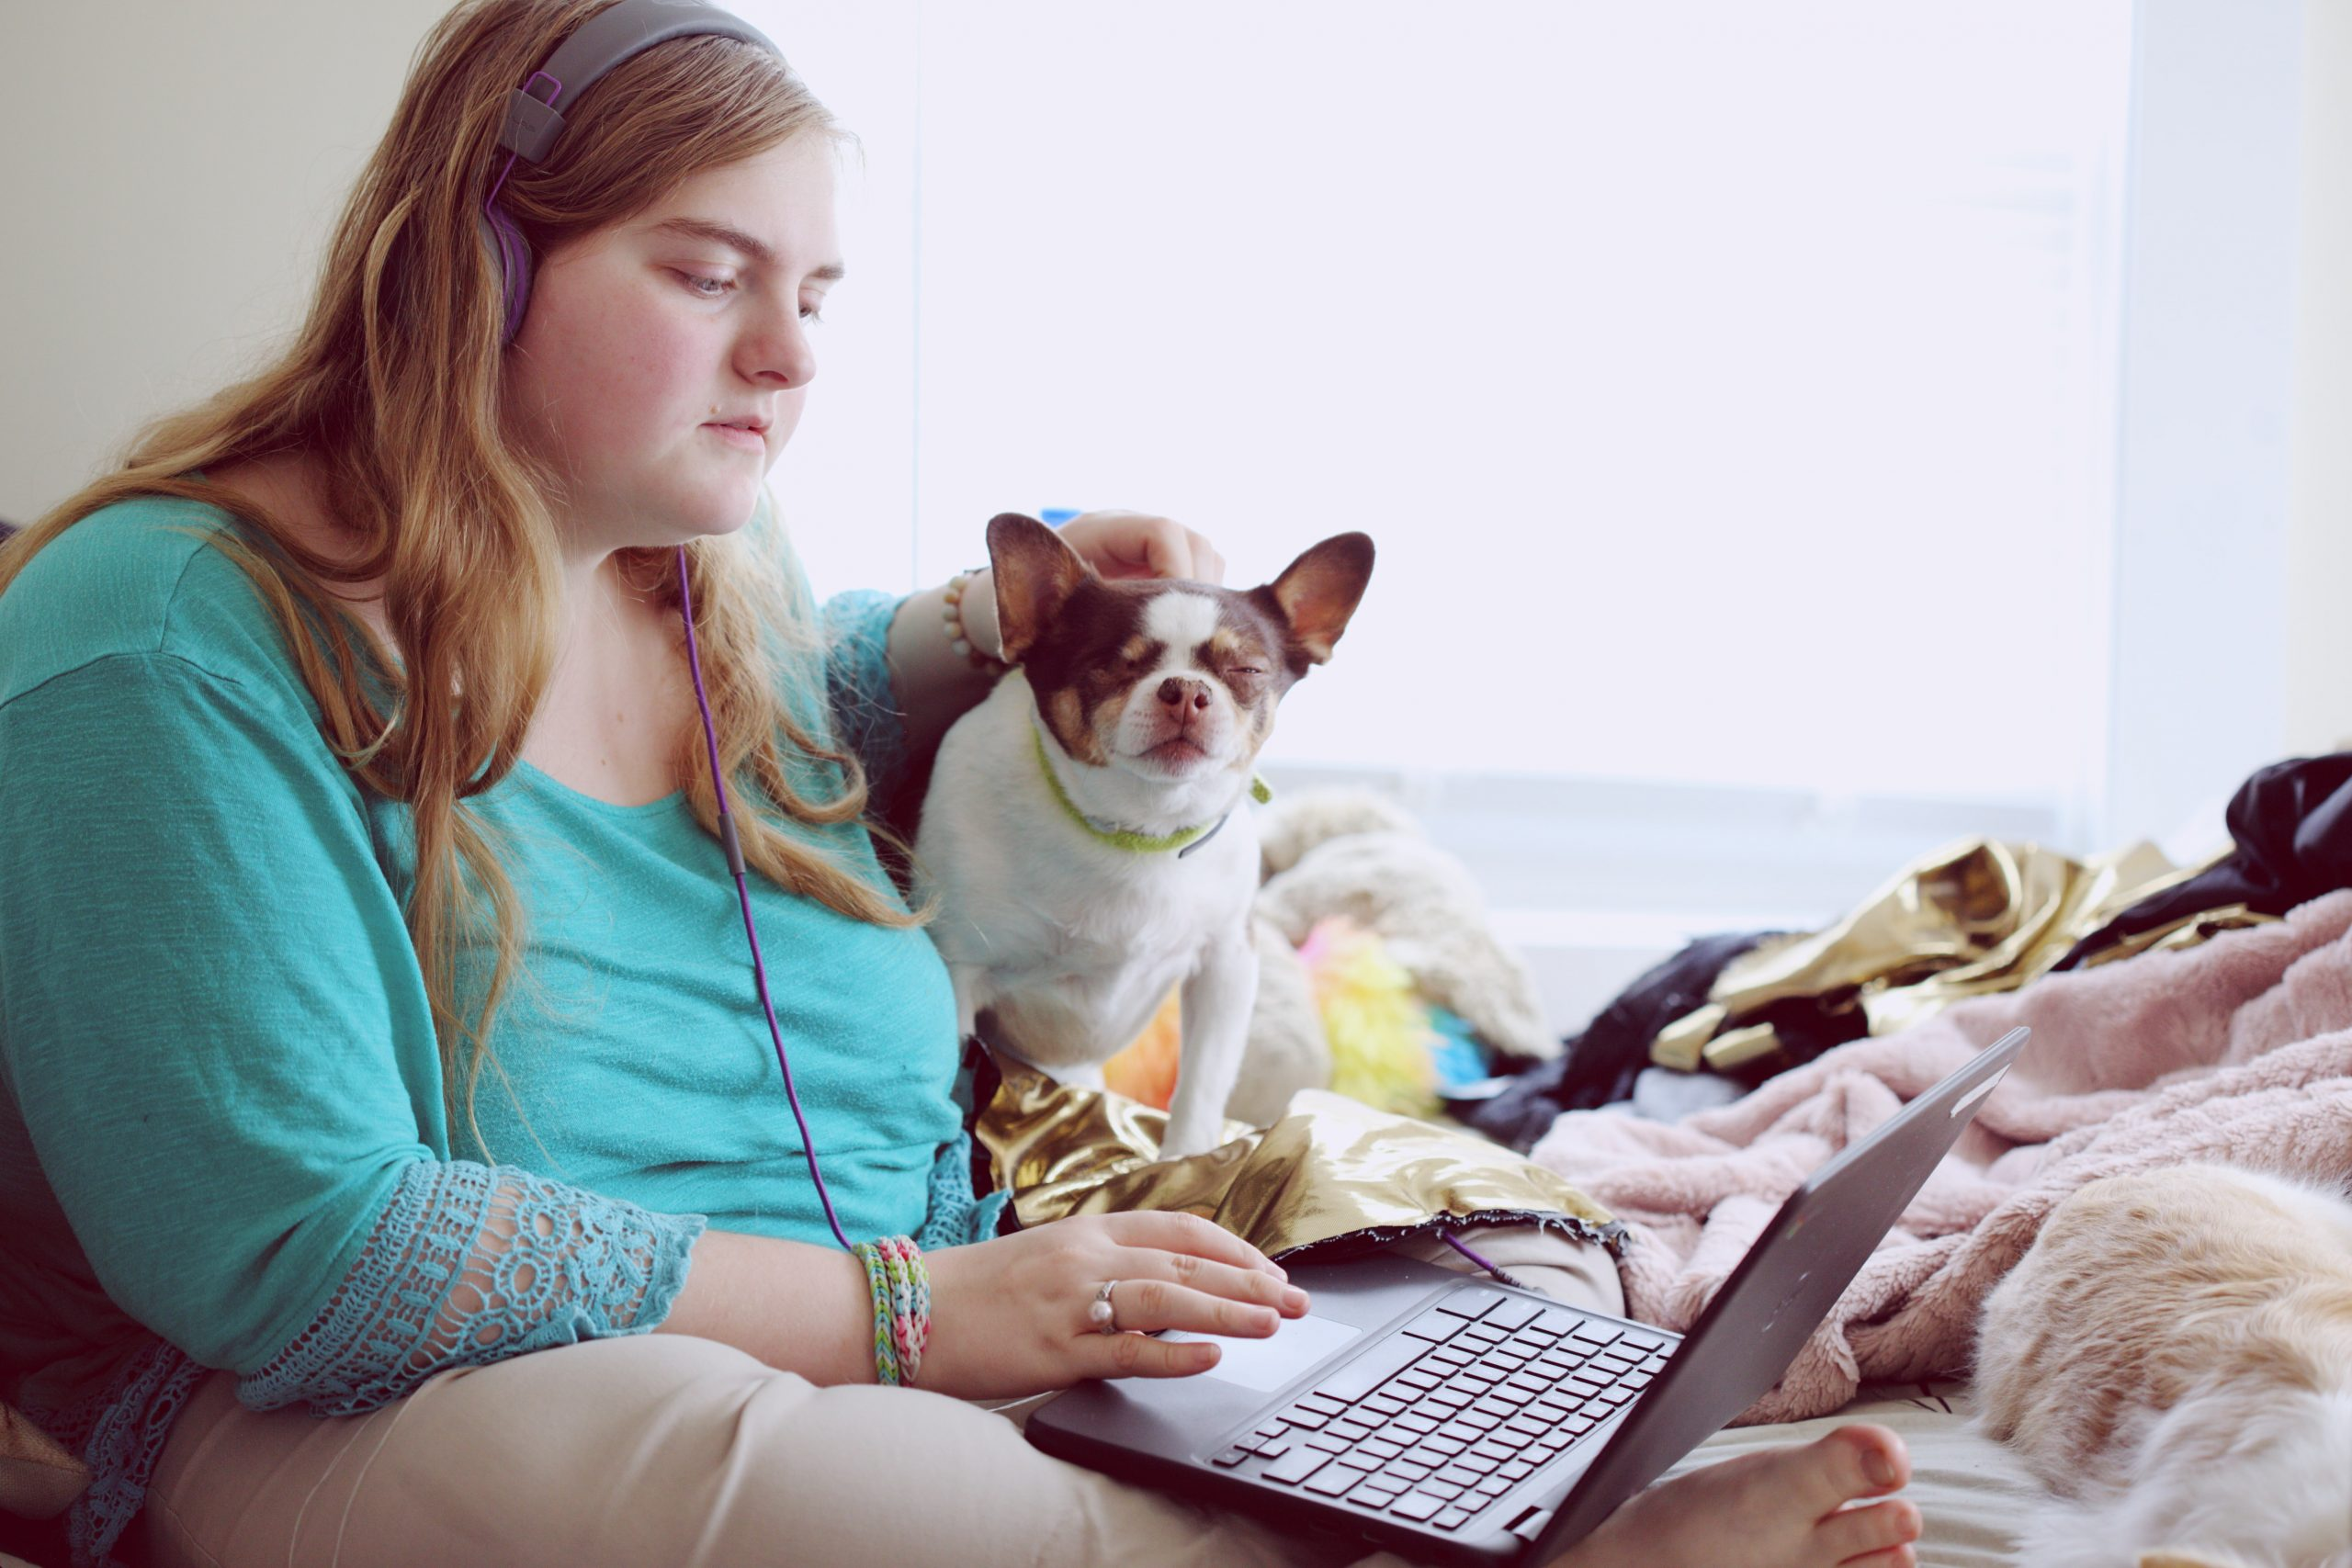 A young woman with learning disabilities sits on her bed with earphones in while she watches something on her laptop. A small emotional support dog sits beside her.